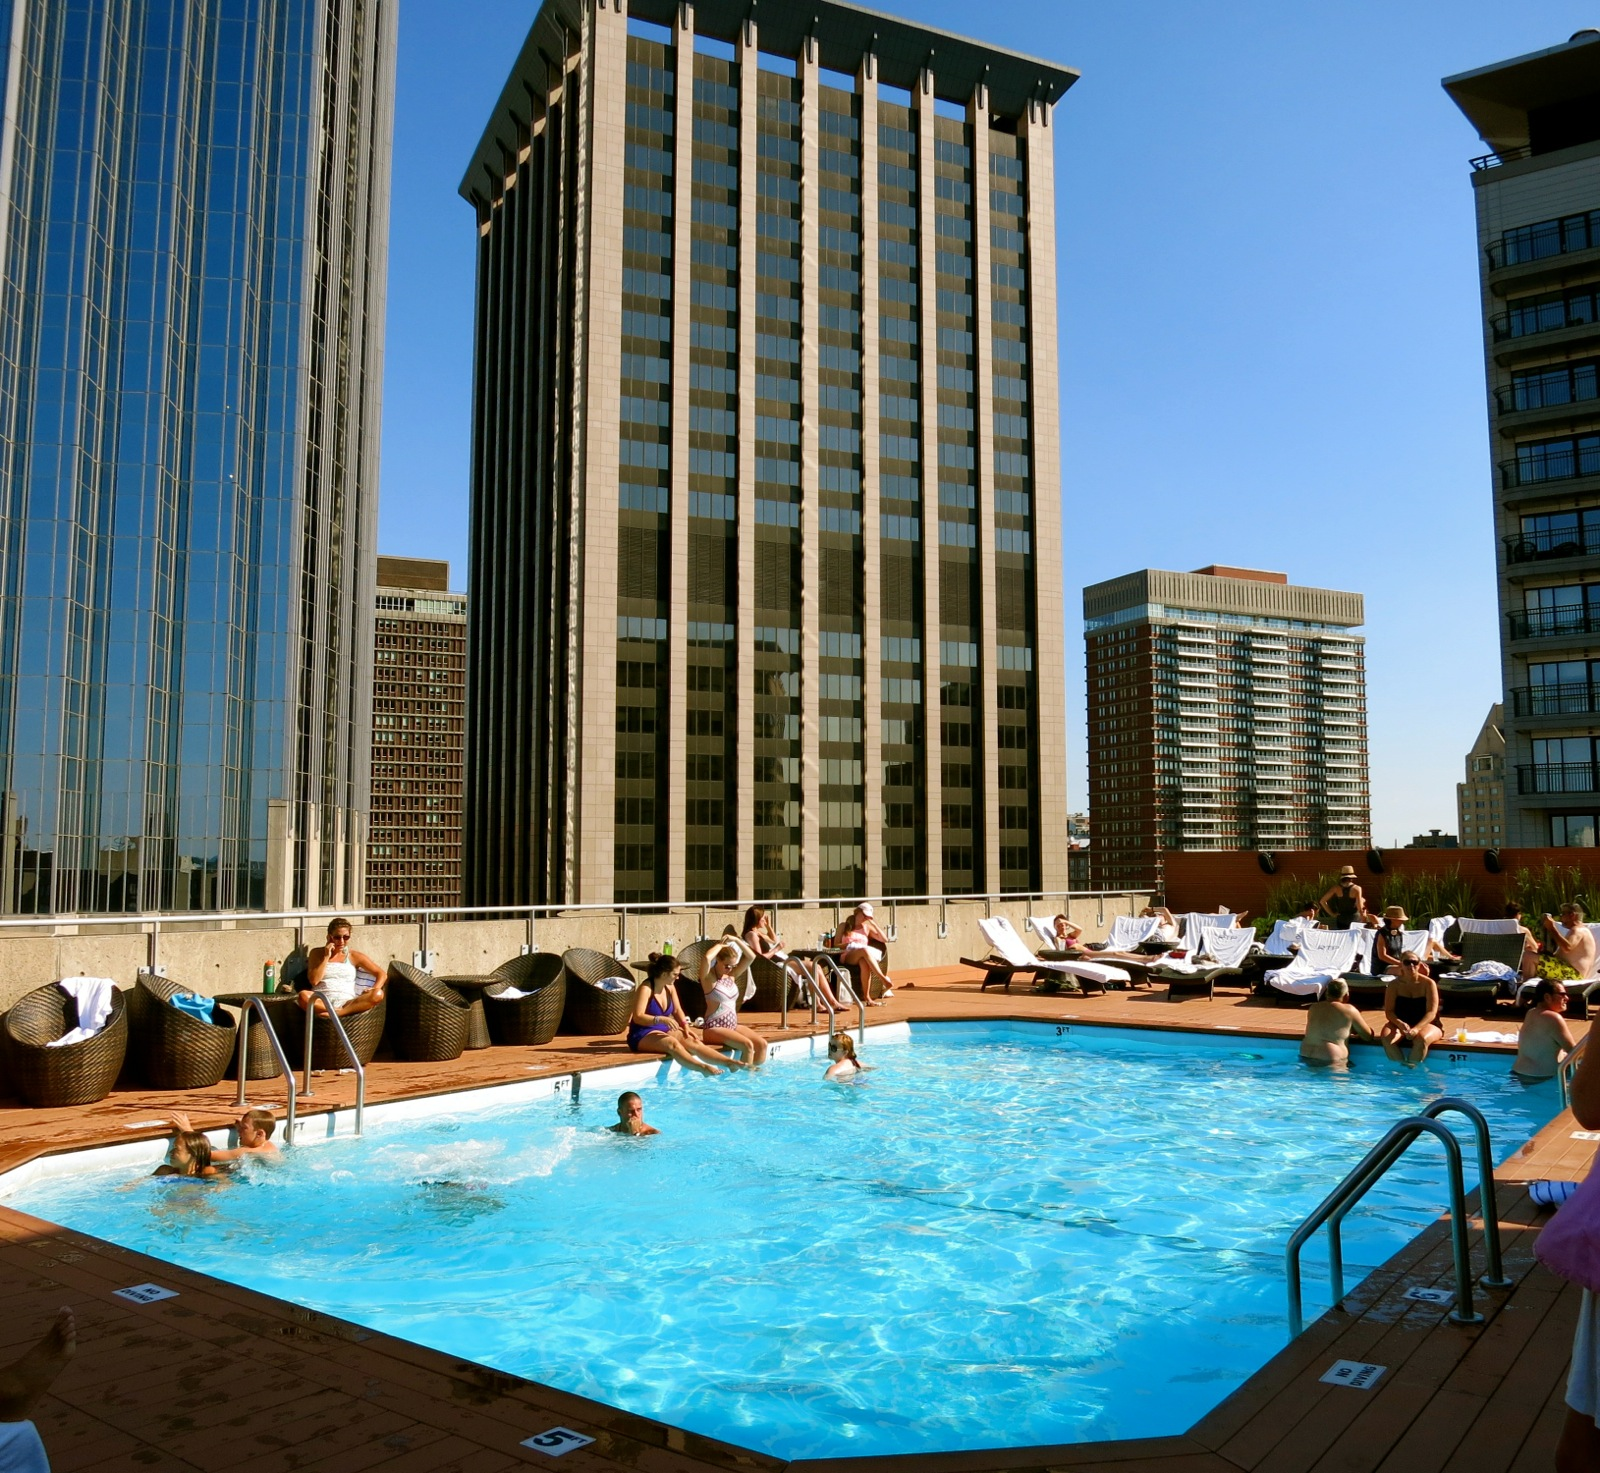 The Colonnade Hotel, Boston: Roof Deck Pool Extraordinaire